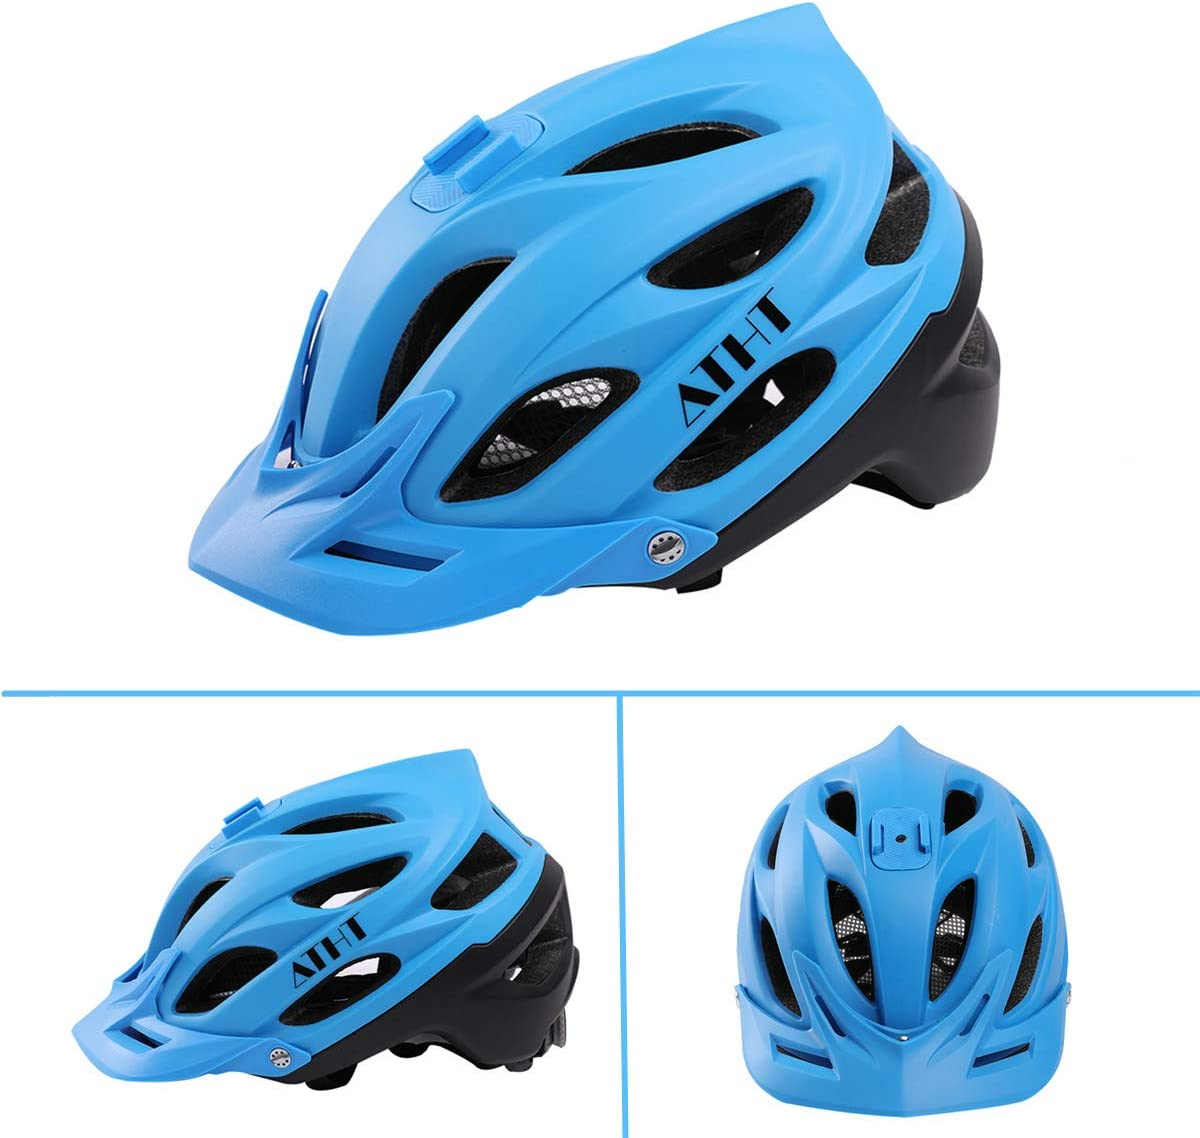 Atphfety Mountain Bike Helmet,MTB Road Bicycle Cycling Downhill Helmets with Camera Mount for Adult Men//Women